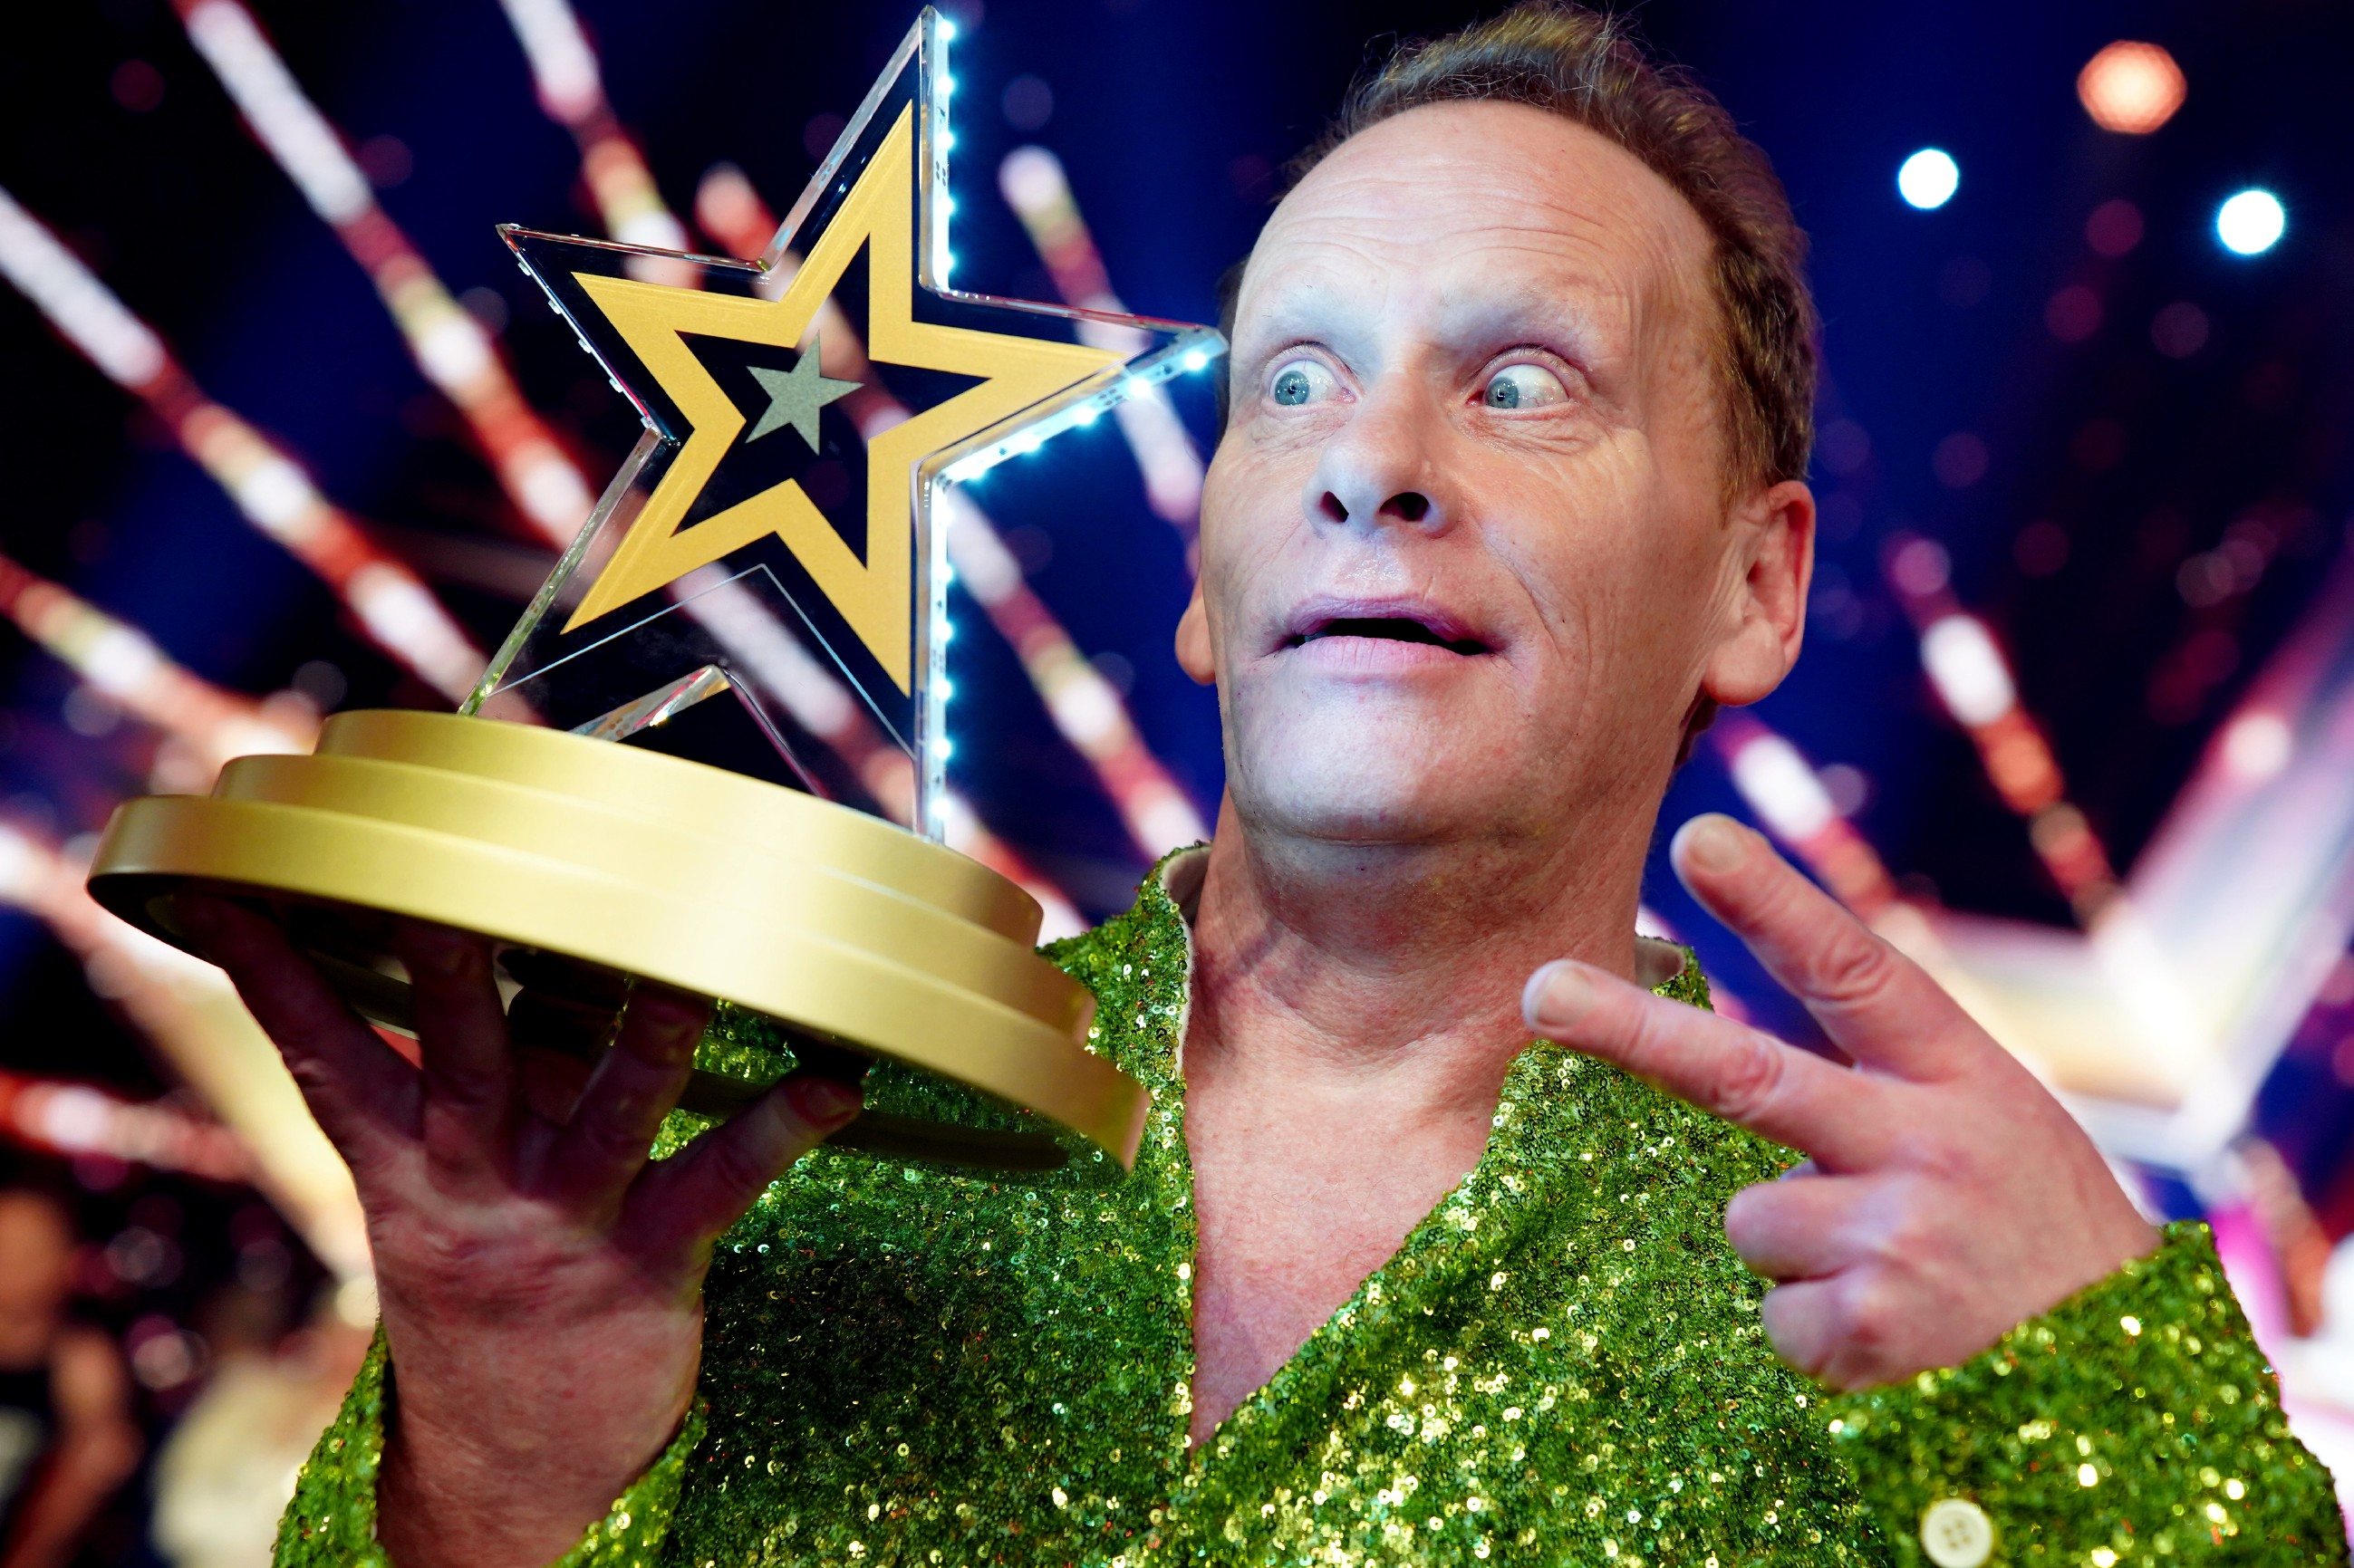 Das Supertalent 2018: Stevie Starr